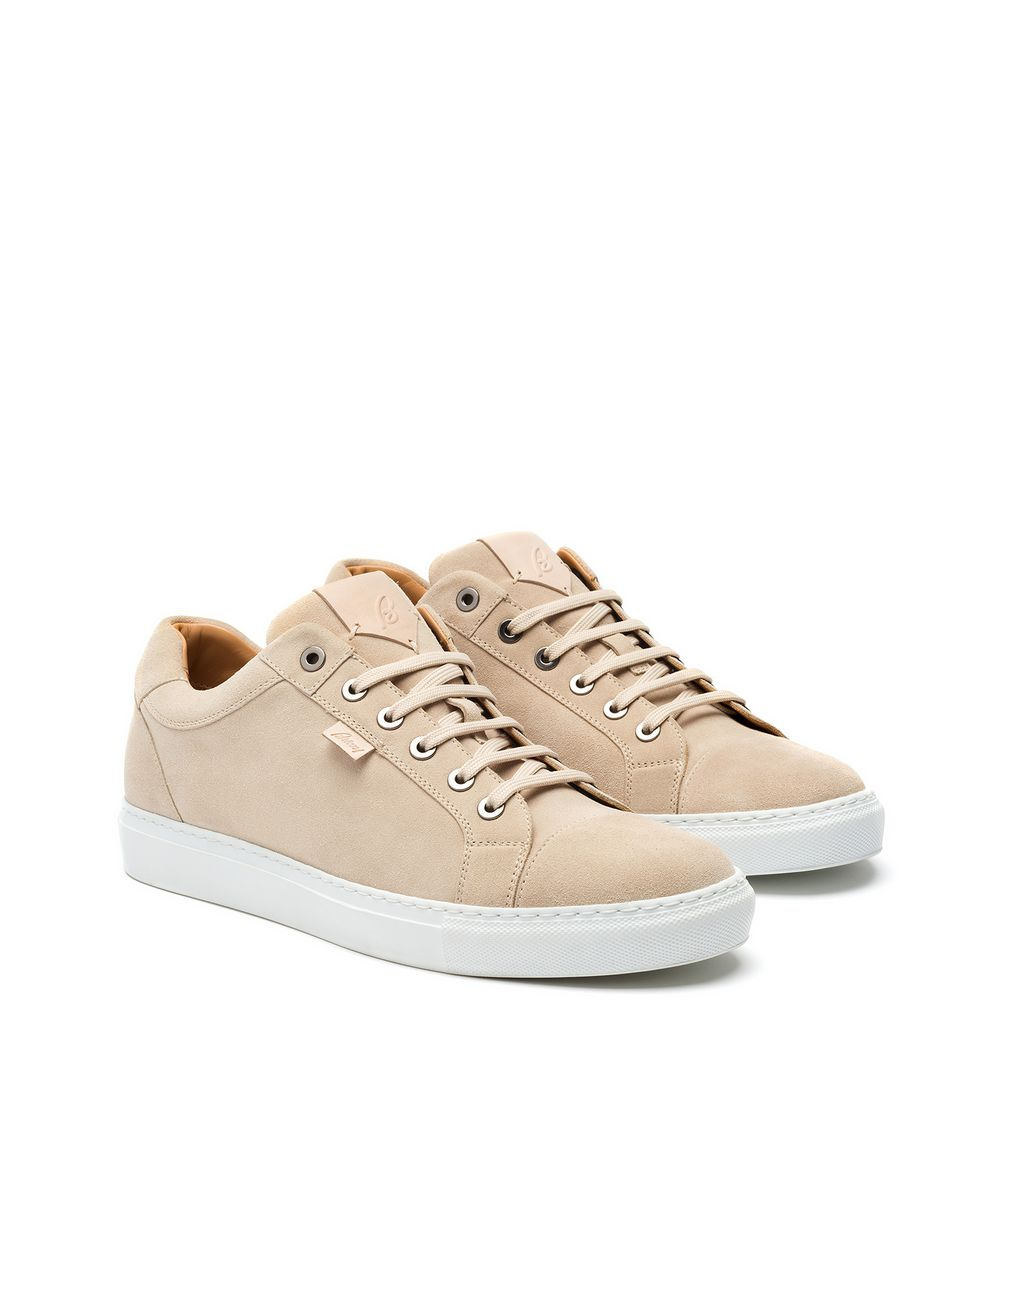 BRIONI Ivory Calfskin Suede Sneaker Sneakers [*** pickupInStoreShippingNotGuaranteed_info ***] d